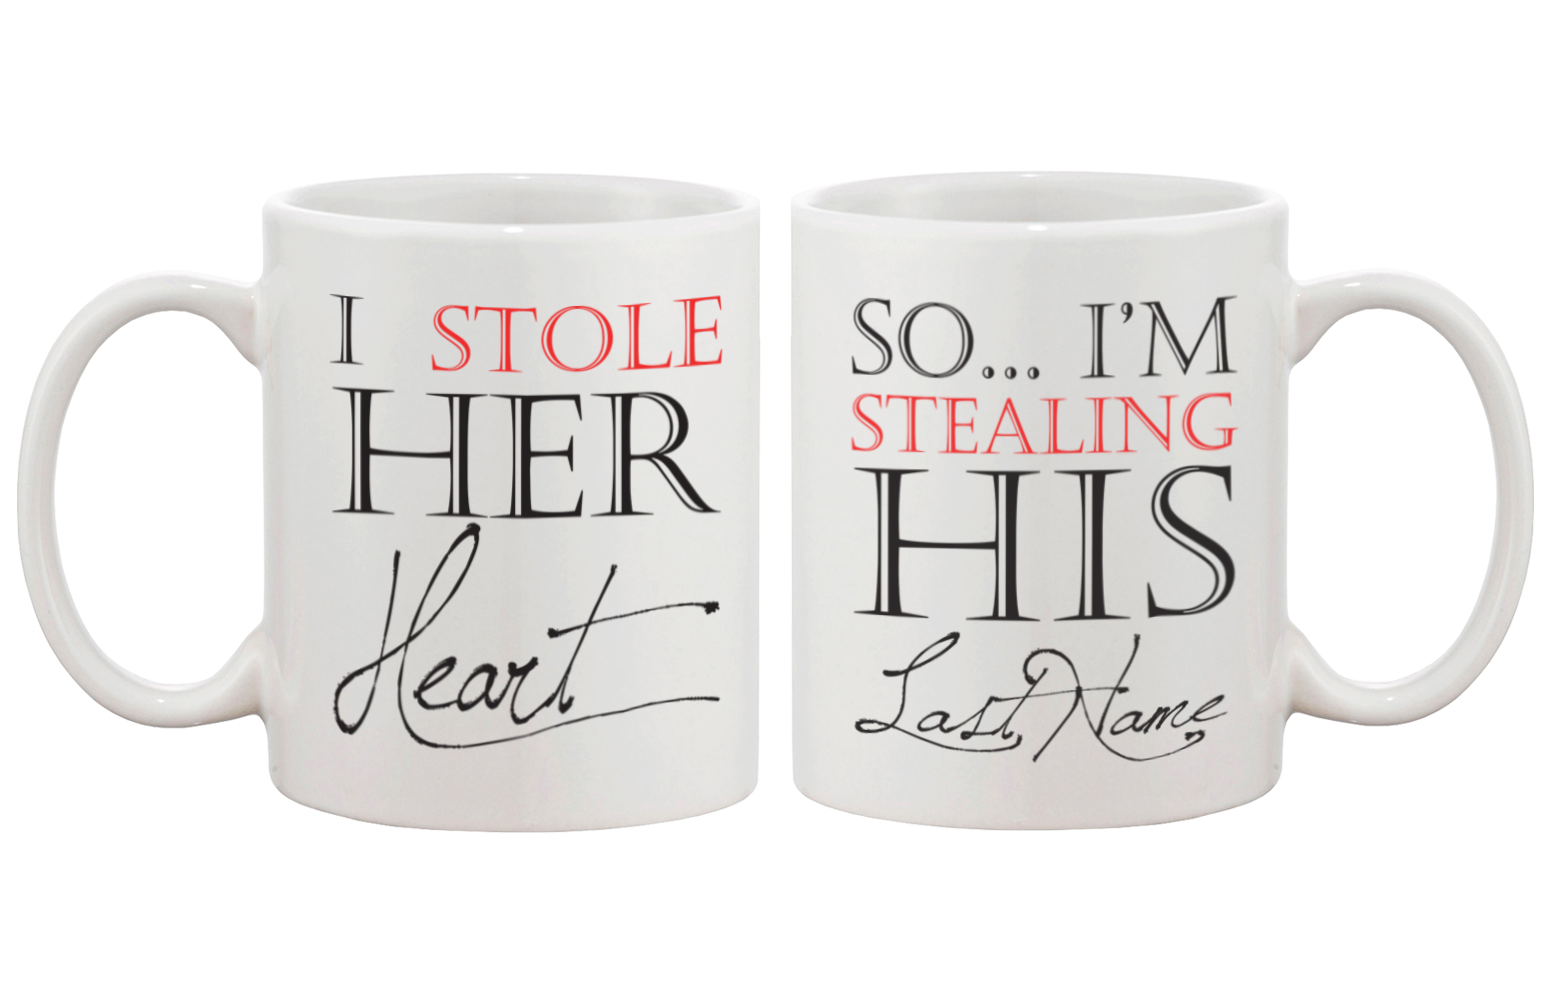 Stealing His Last Name Mug Cups For Newlywed 365 In Love Matching Gifts Ideas